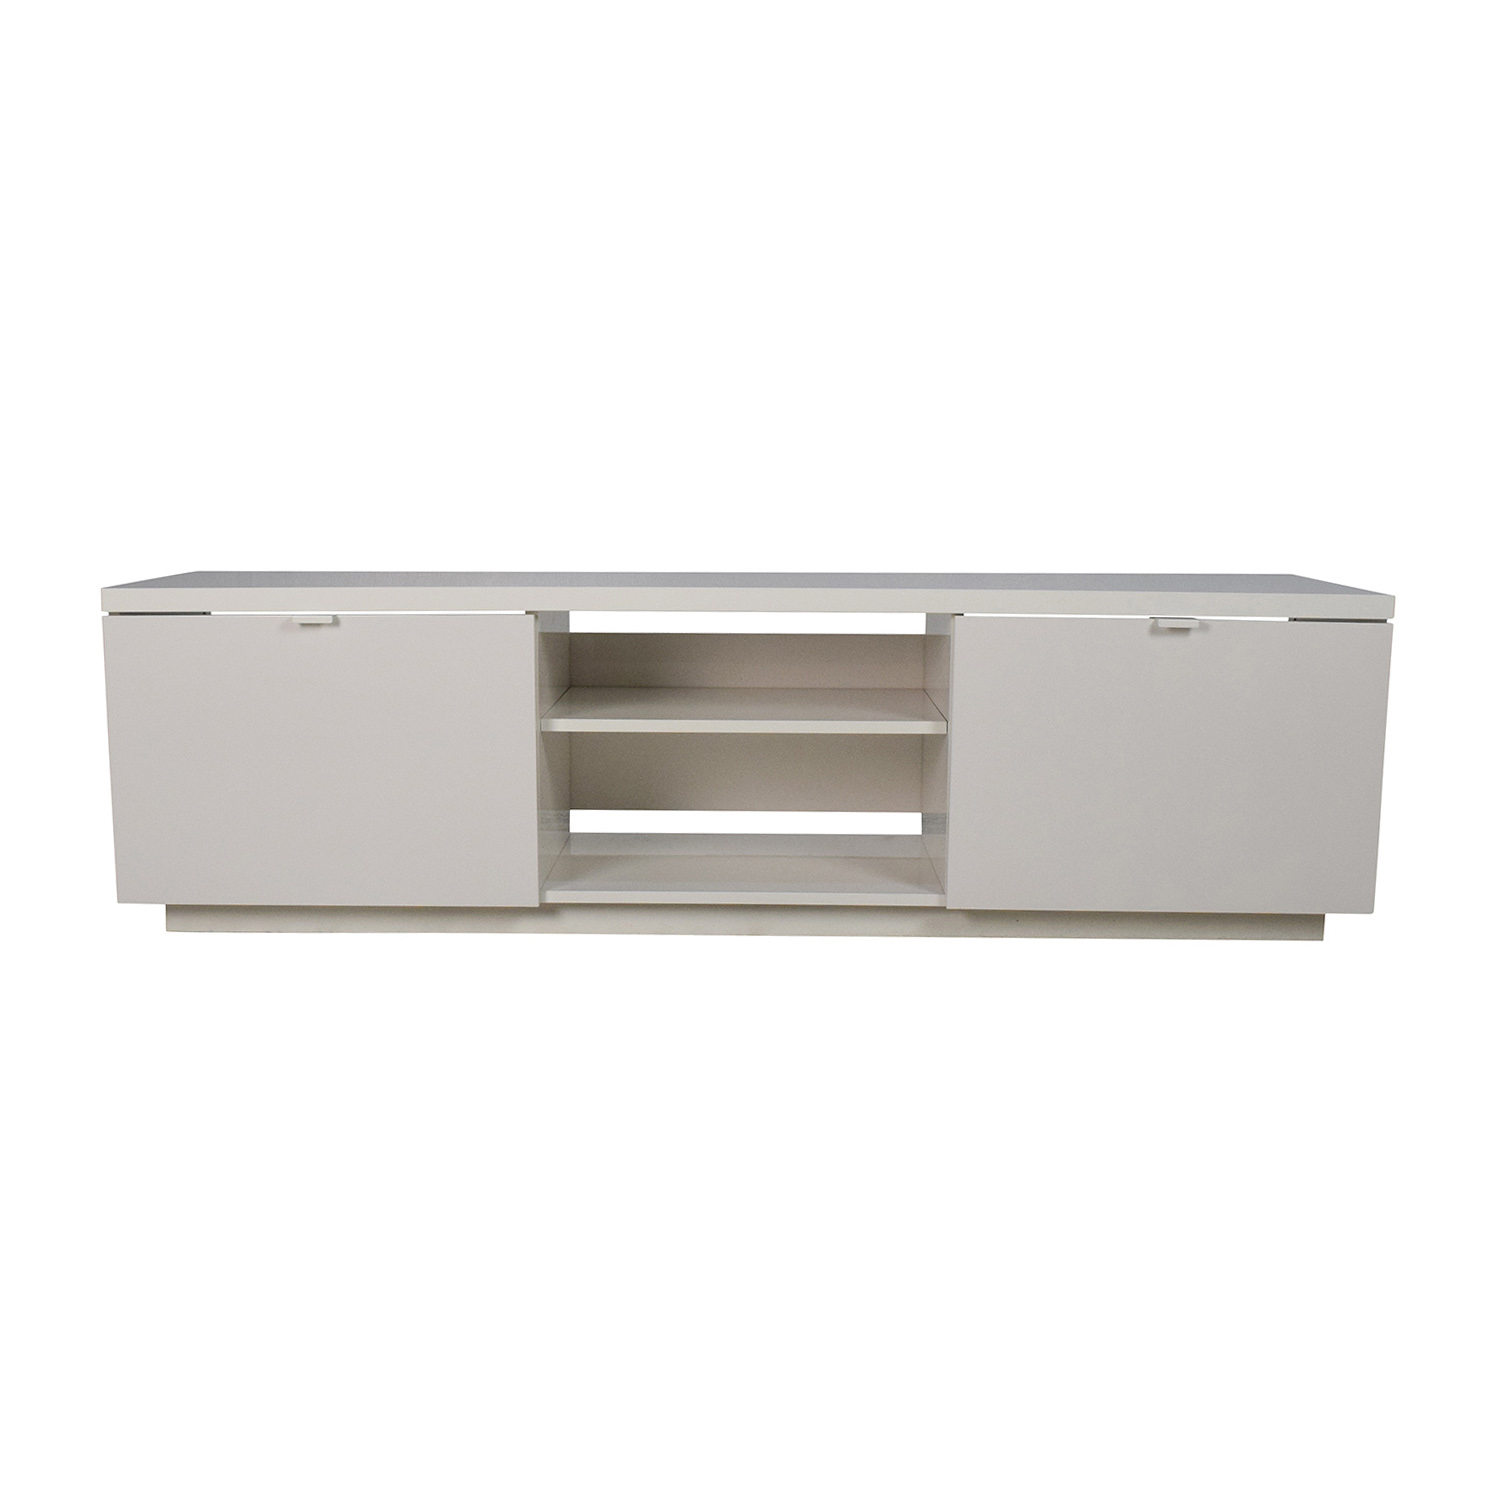 53 off ikea ikea white tv media unit storage. Black Bedroom Furniture Sets. Home Design Ideas